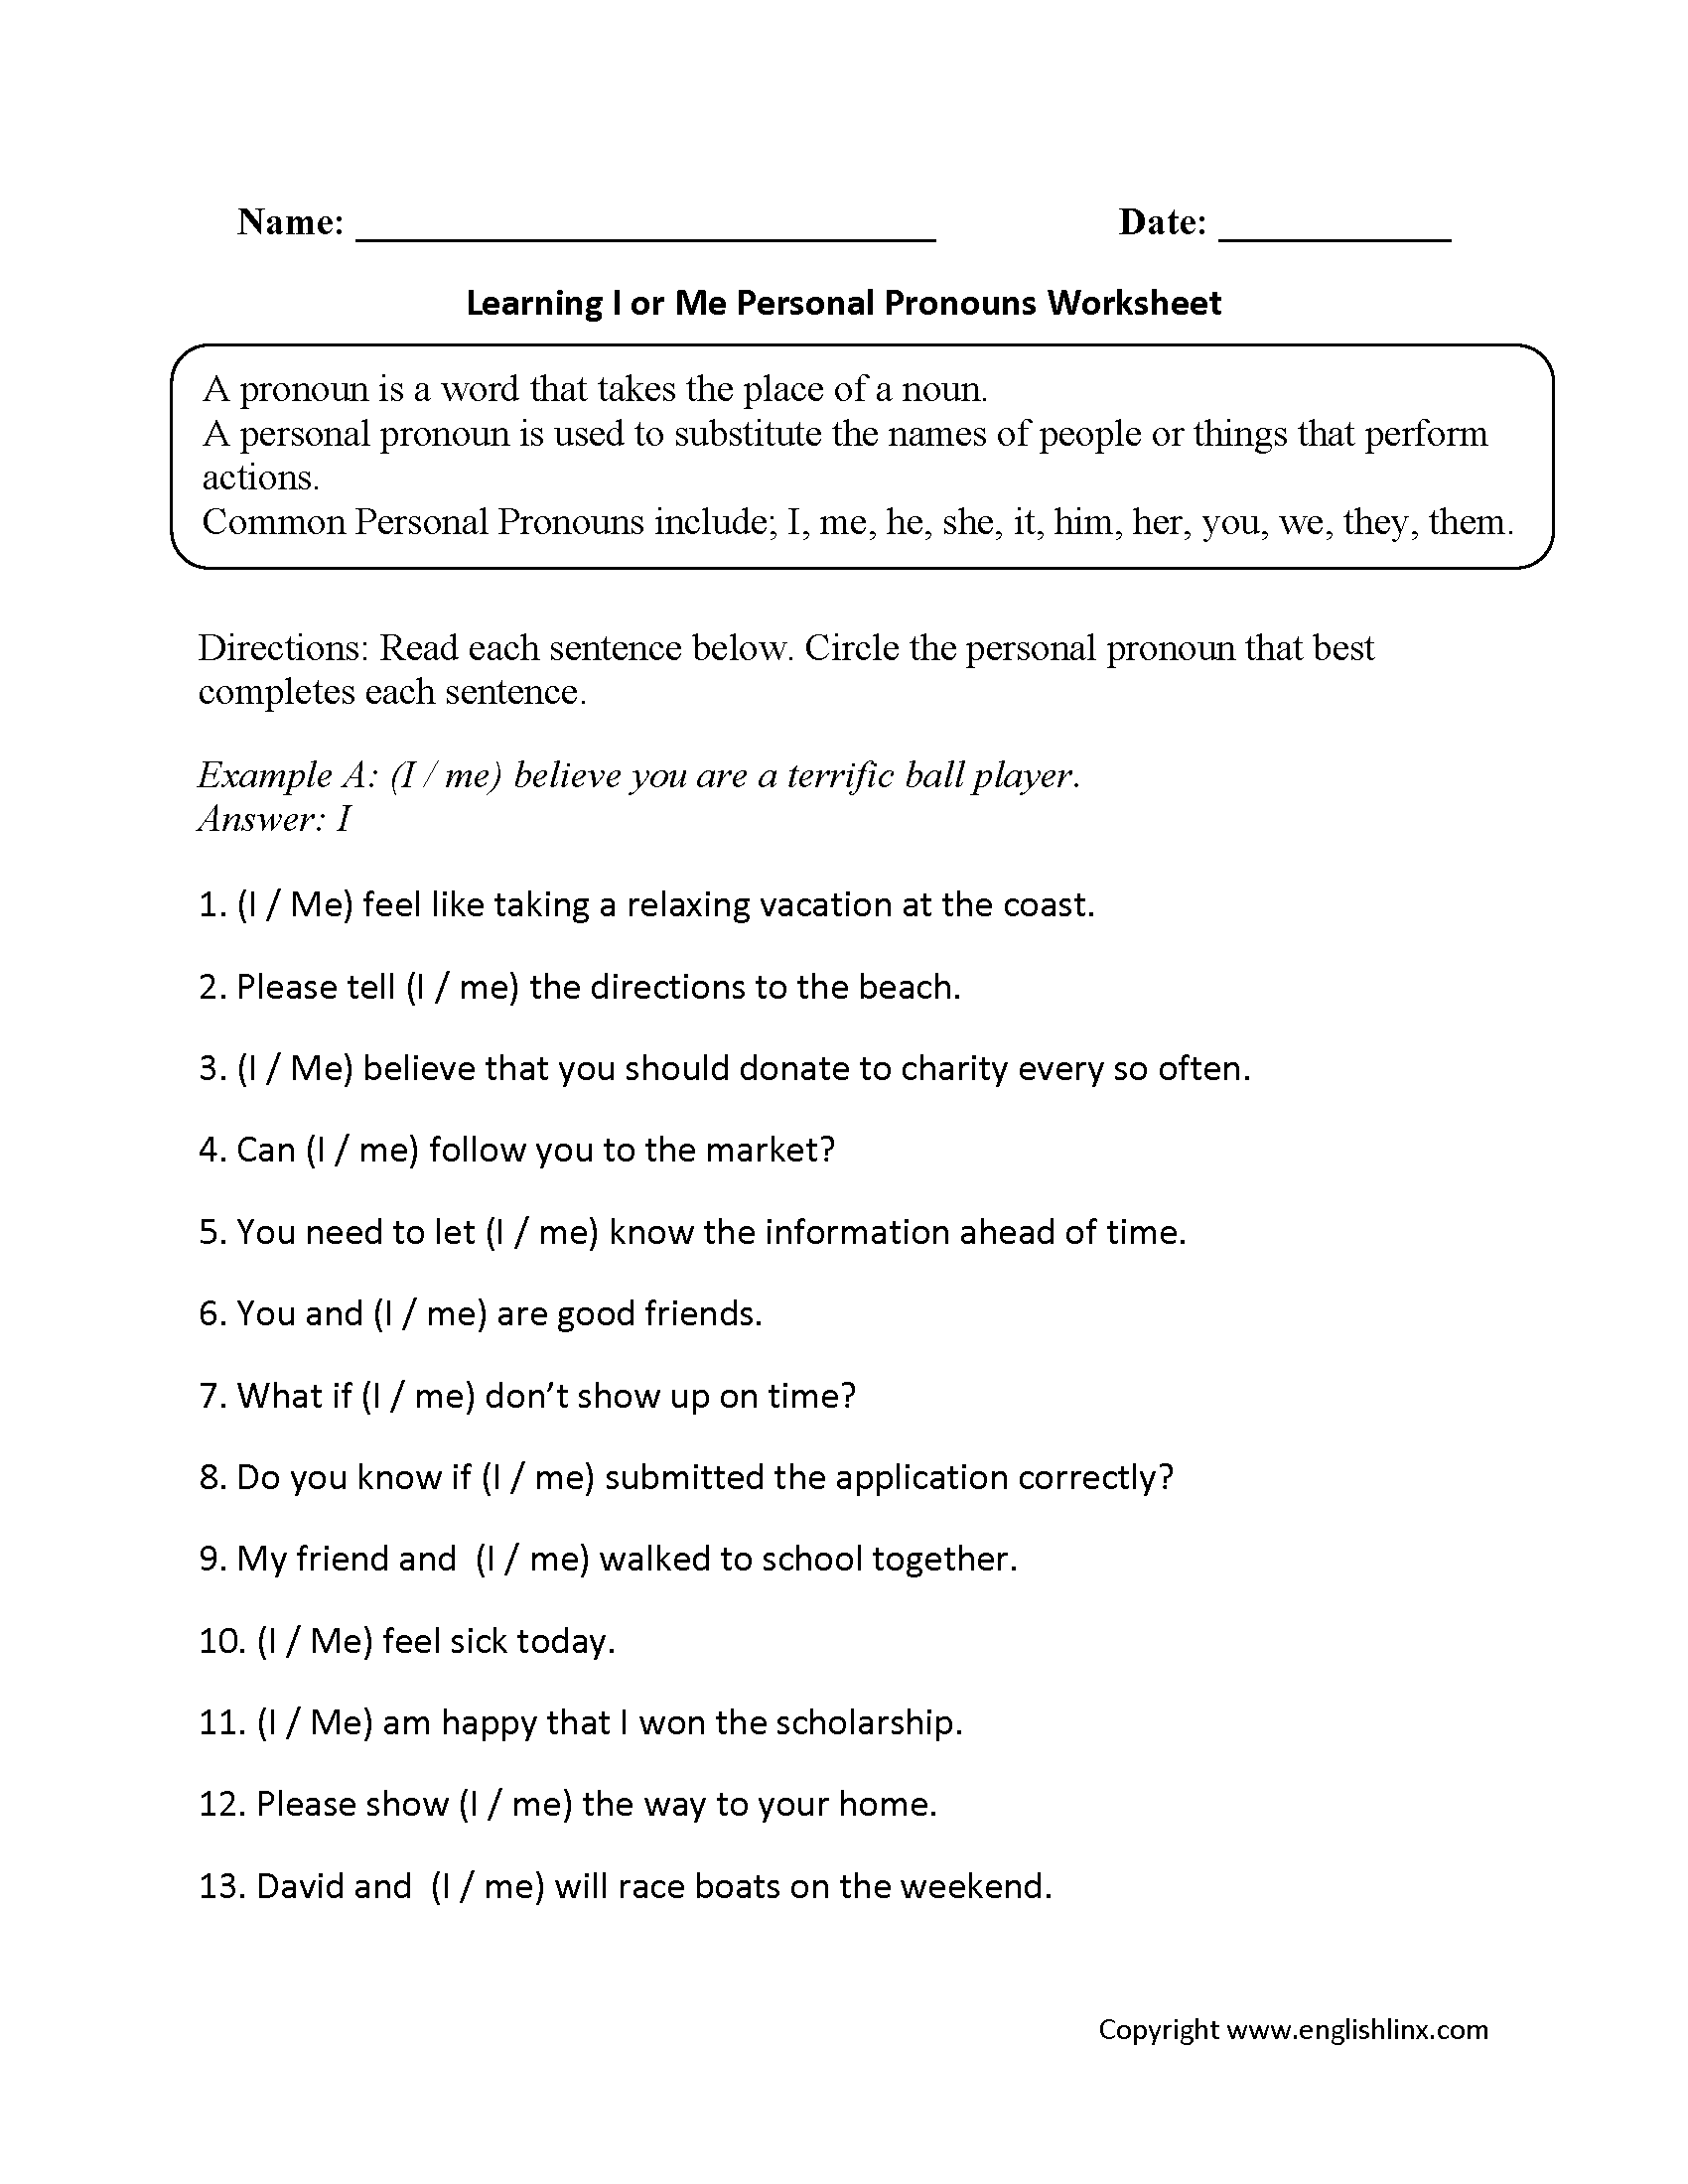 Regular Pronouns Worksheets | I or Me Personal Pronoun Worksheet